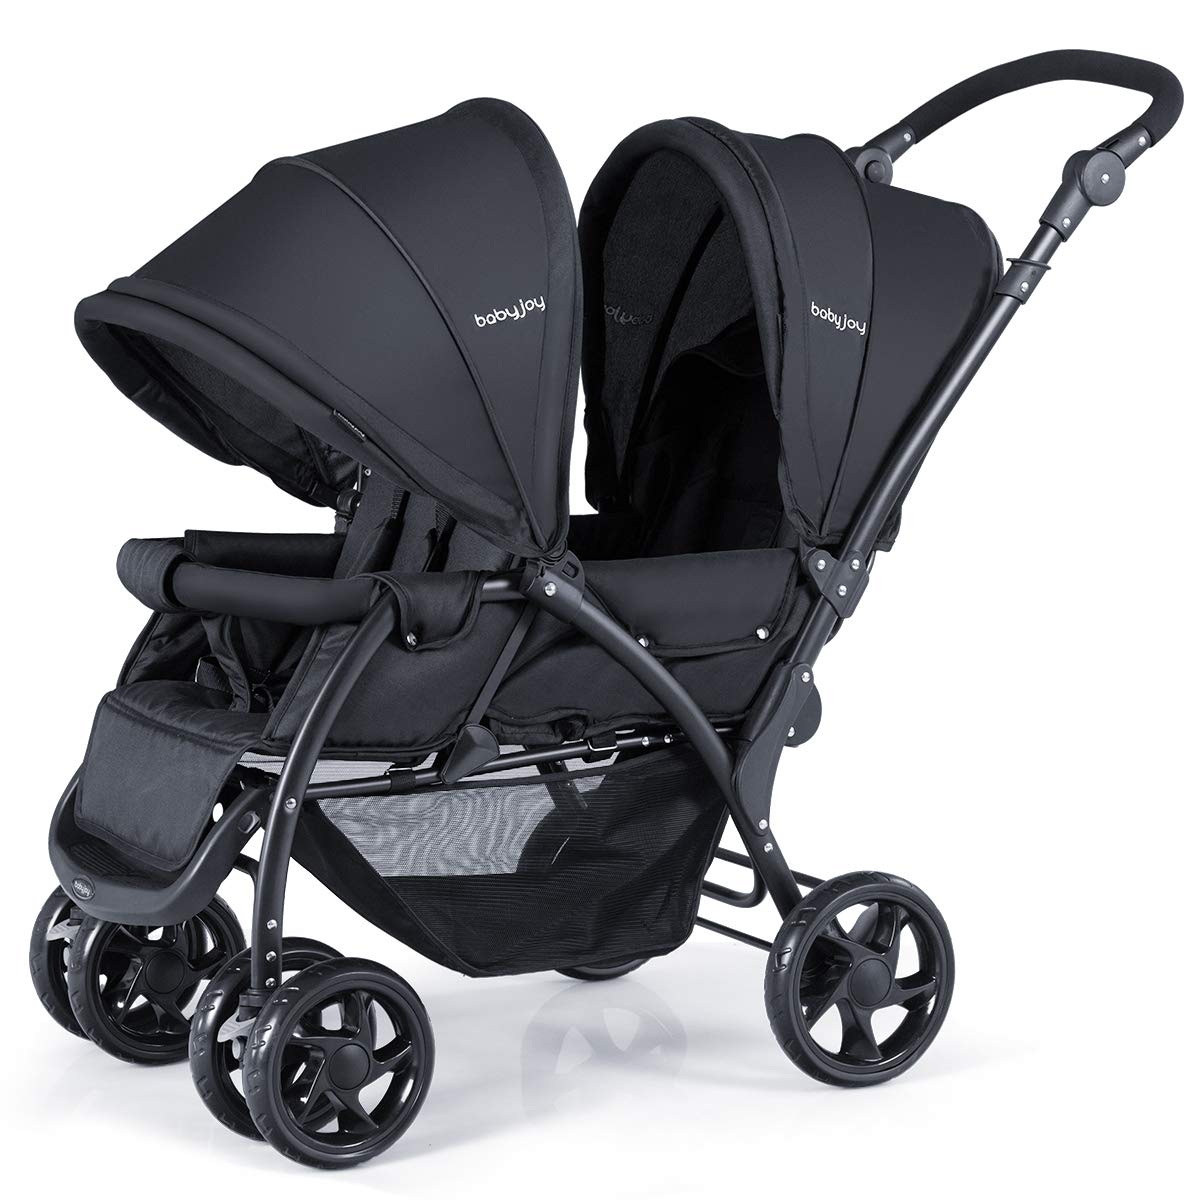 BABY JOY Foldable Double Seat Baby Stroller, Heavy Duty Construction Frame for Safety, Adjustable Backrest, Push Handle and Footrest, Safety Wheels, 5 Points Safety Belts (Black)